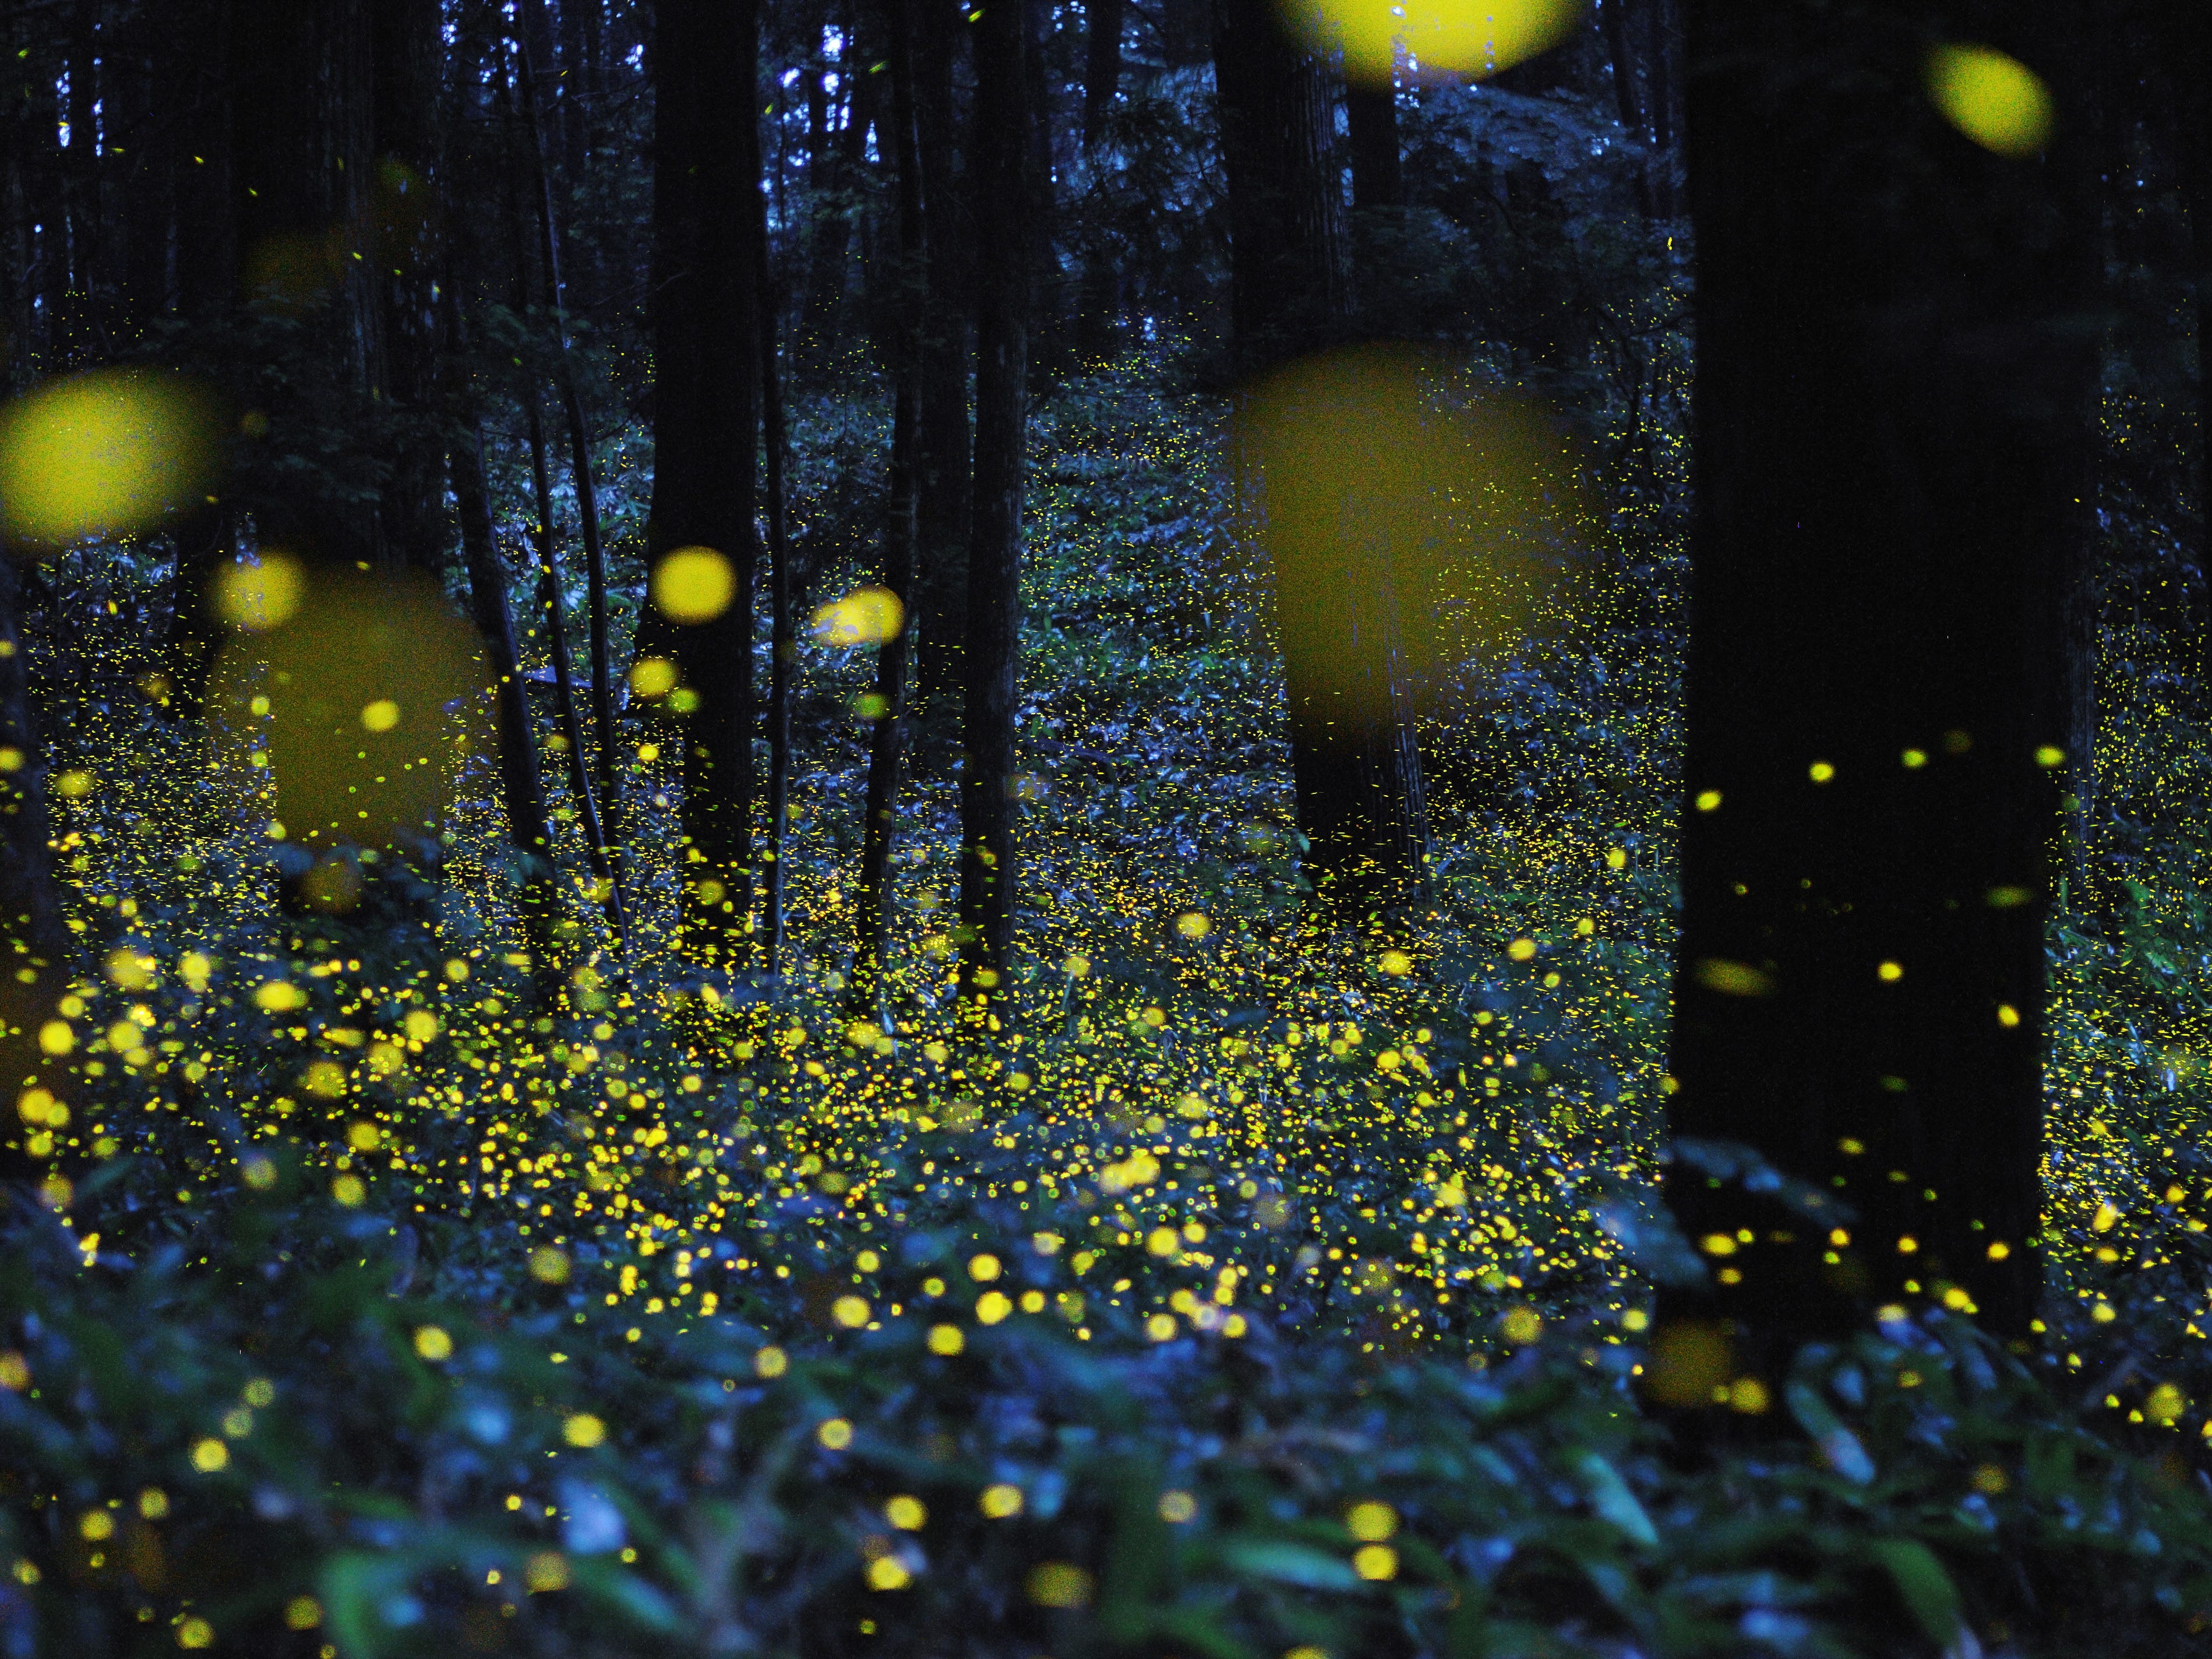 """From fireflies lighting up the summer nights to glowing deep-sea dwellers, bioluminescent creatures are the focus of """"Creatures of Light: Nature's Bioluminescence"""" at the Phillip and Patricia Frost Museum of Science in Miami. Here, photographer Tsuneaki Hiramatsu combined slow–shutter speed photos to produce images of firefly signals."""